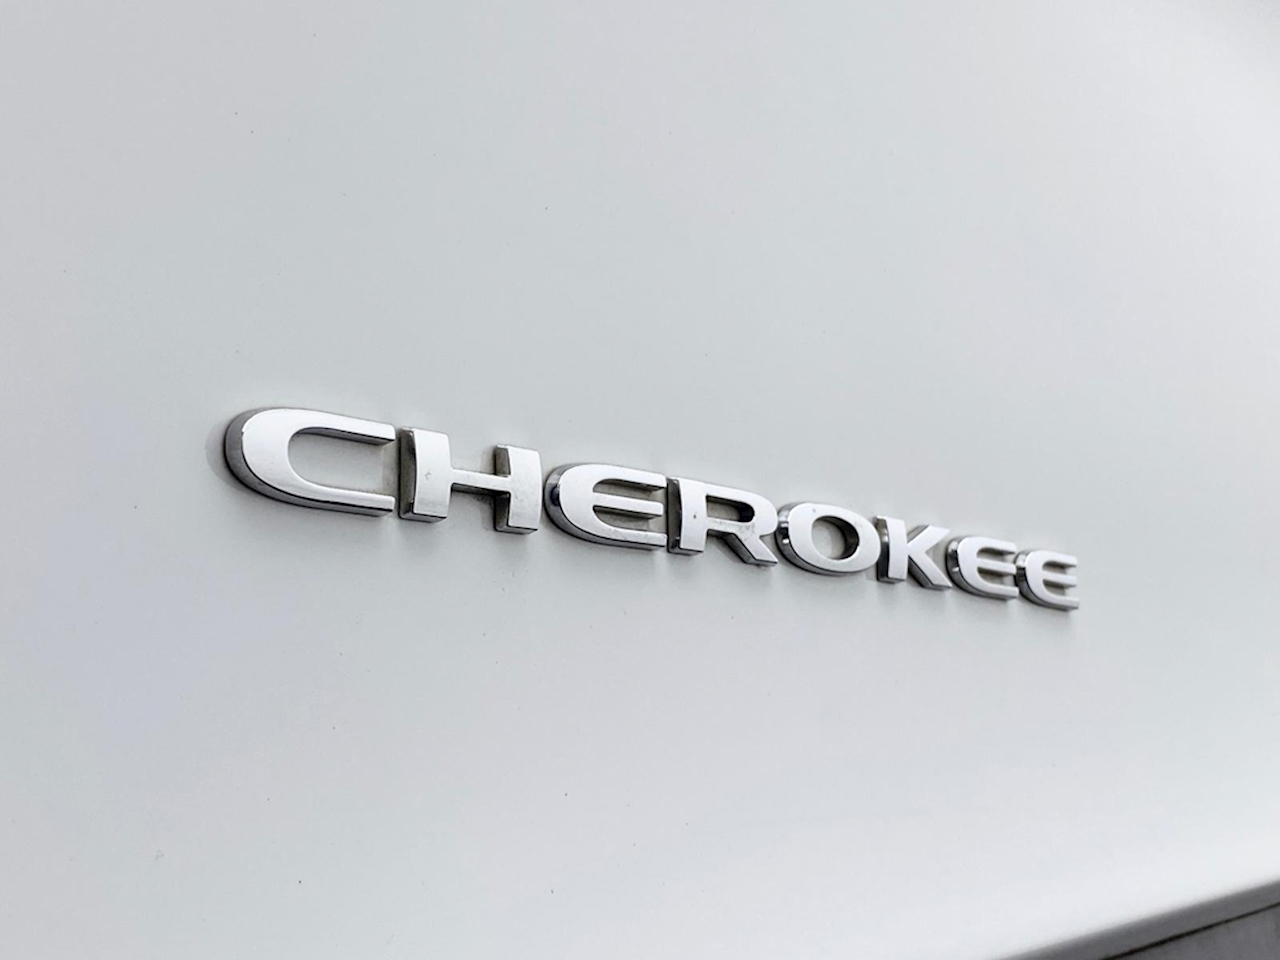 Jeep Cherokee M-Jet Limited Estate 2.0 Manual Diesel